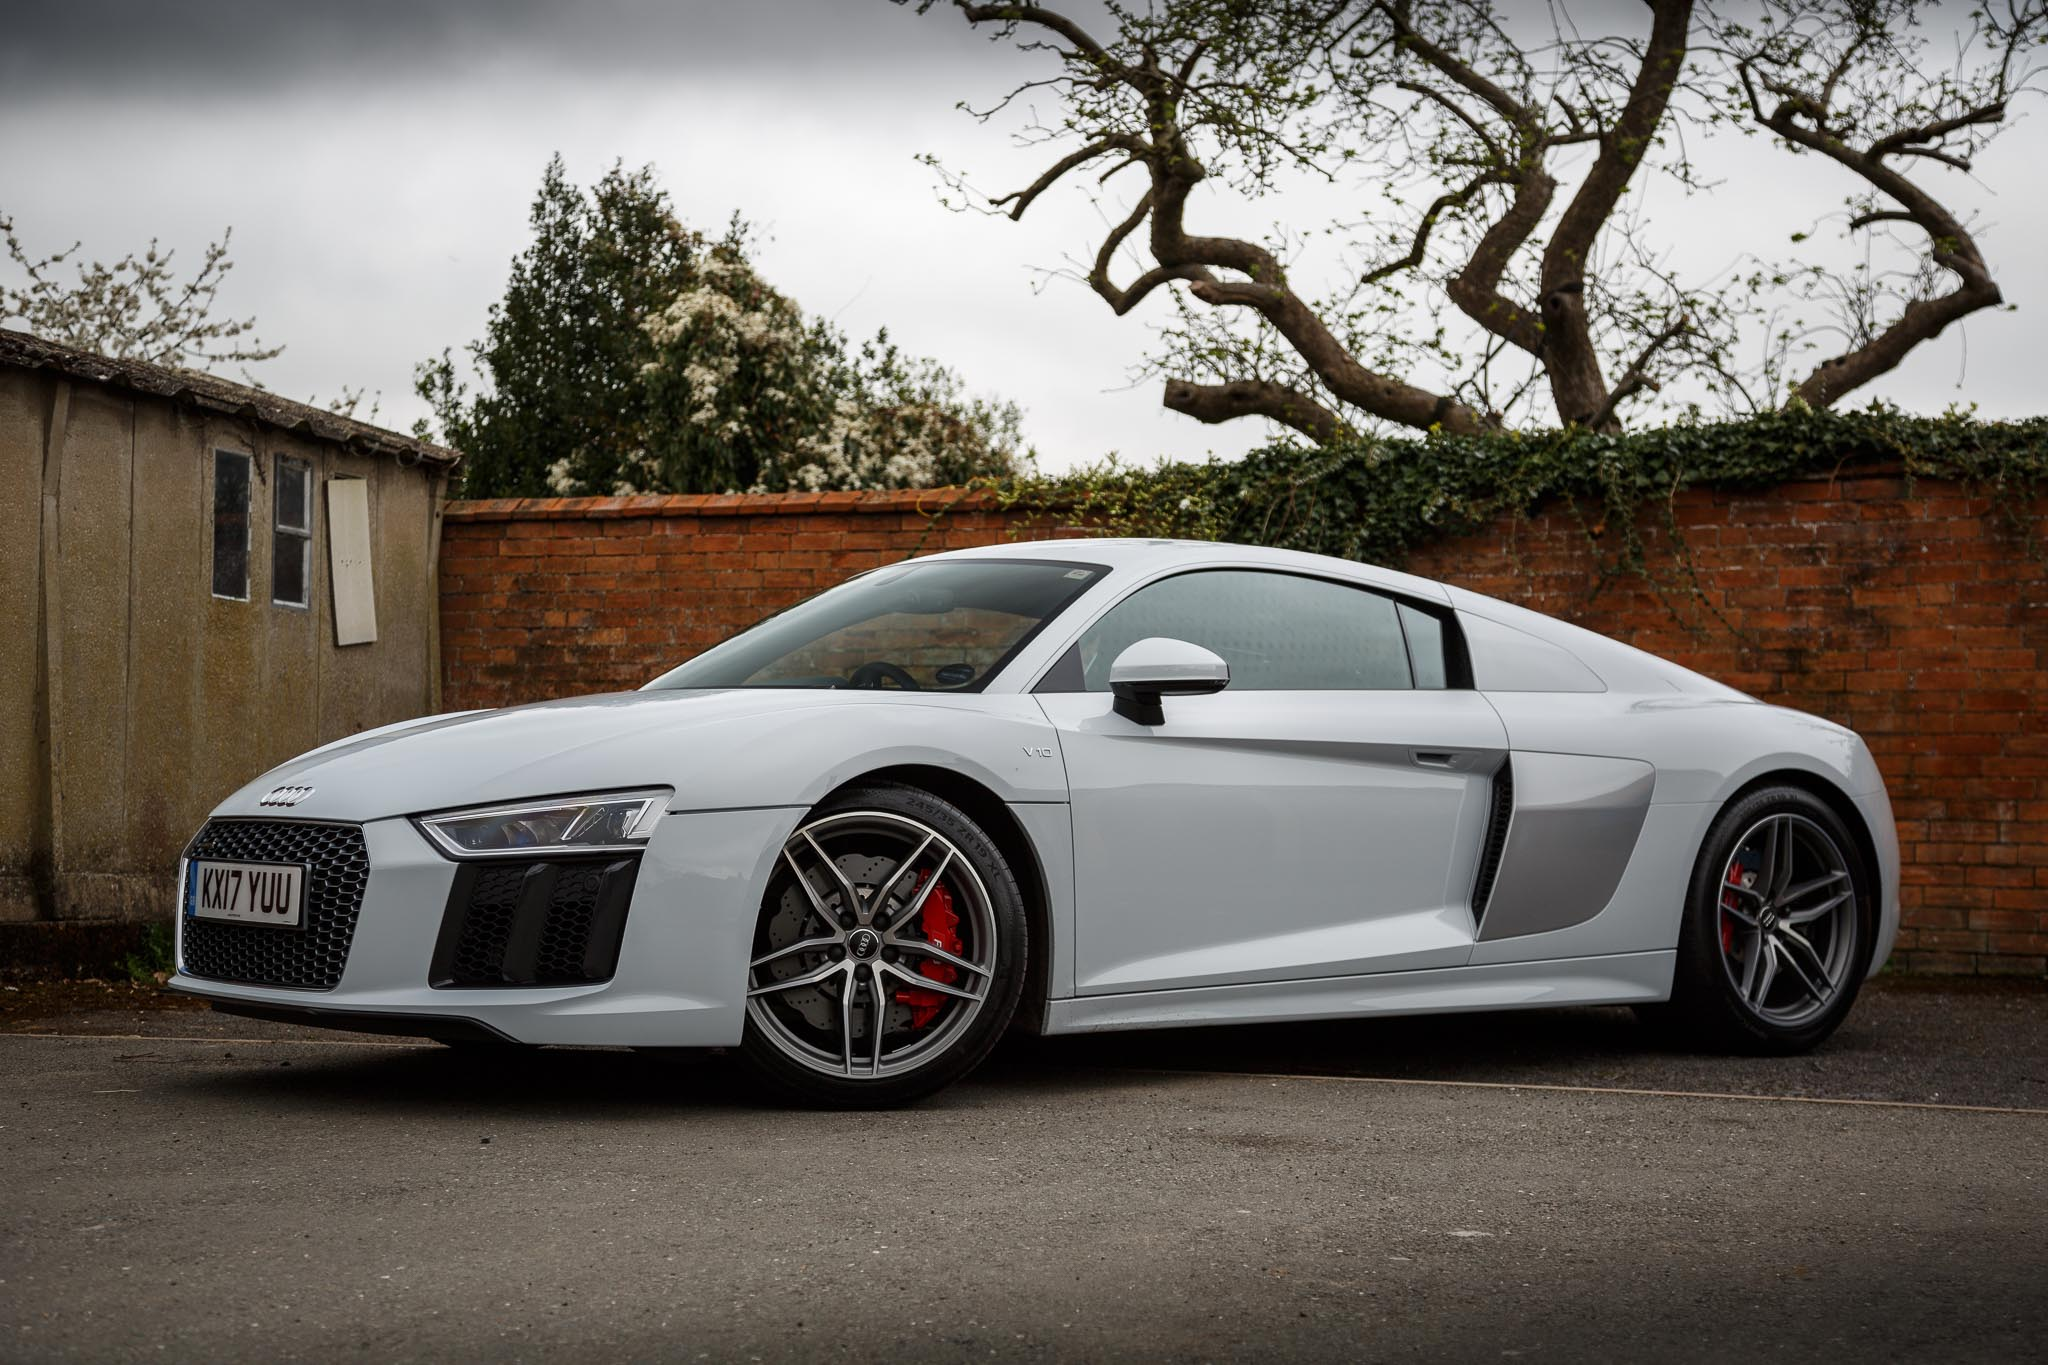 2017 Audi R8 V10 Review - A Properly Fast, Everyday Supercar